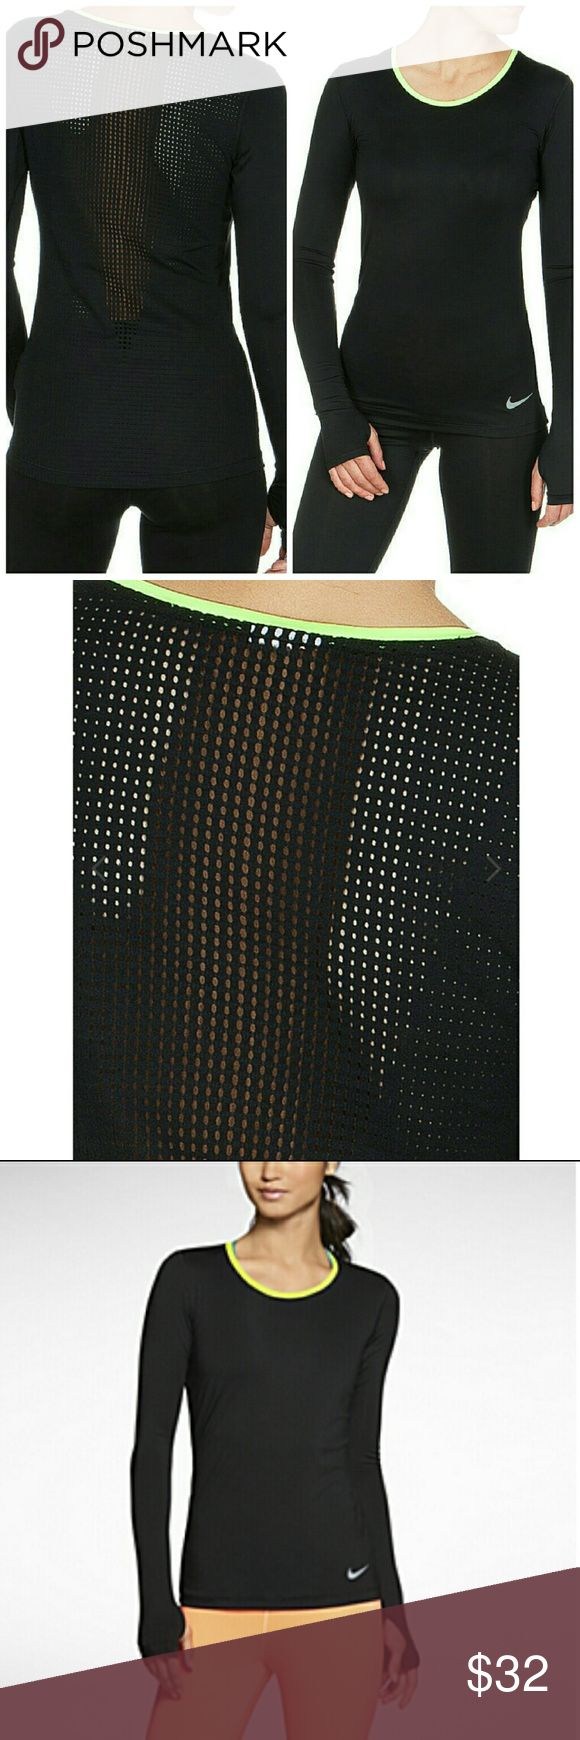 NEW Nike Pro Hypercool Fitness Shirt L/S Top Premium breathability and maximum comfort, the Nike Pro Hypercool fitted long-sleeve women's top is designed with perforations in key areas and flat seams for superior ventilation and minimal irritations during practice or under the game-day uniform.  *BeRound neckline with green tape *Slim fit *Long sleeve with back of hand warmers *Large-area mesh insert on the back for optimum cooling effect *DRI FIT wicks sweat away from the body and keeps it…